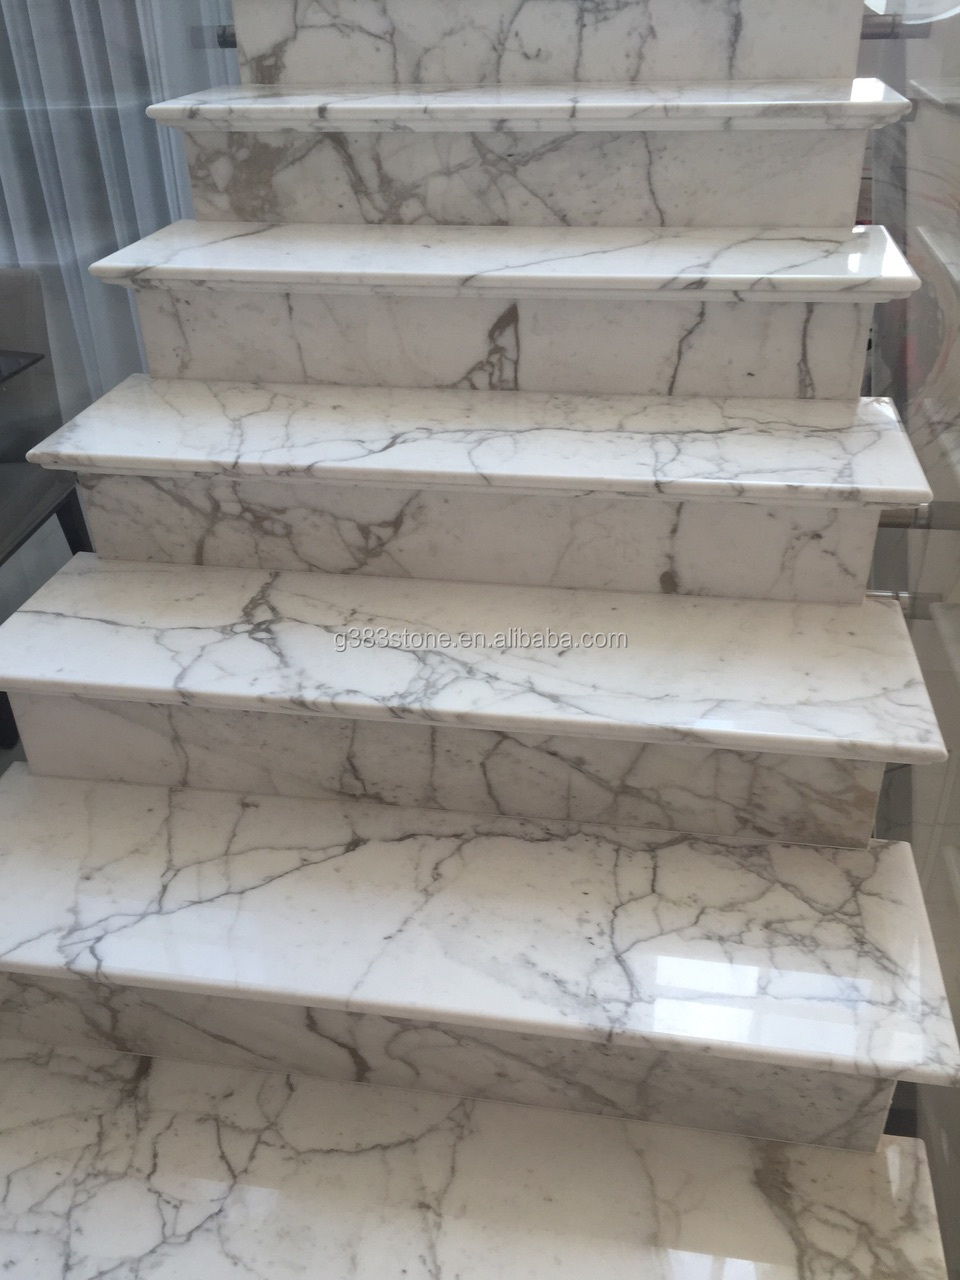 Lowest price bianco carrara white marble floor tiles wholesales and lowest price bianco carrara white marble floor tiles wholesales and carrara marble m2 price dailygadgetfo Image collections